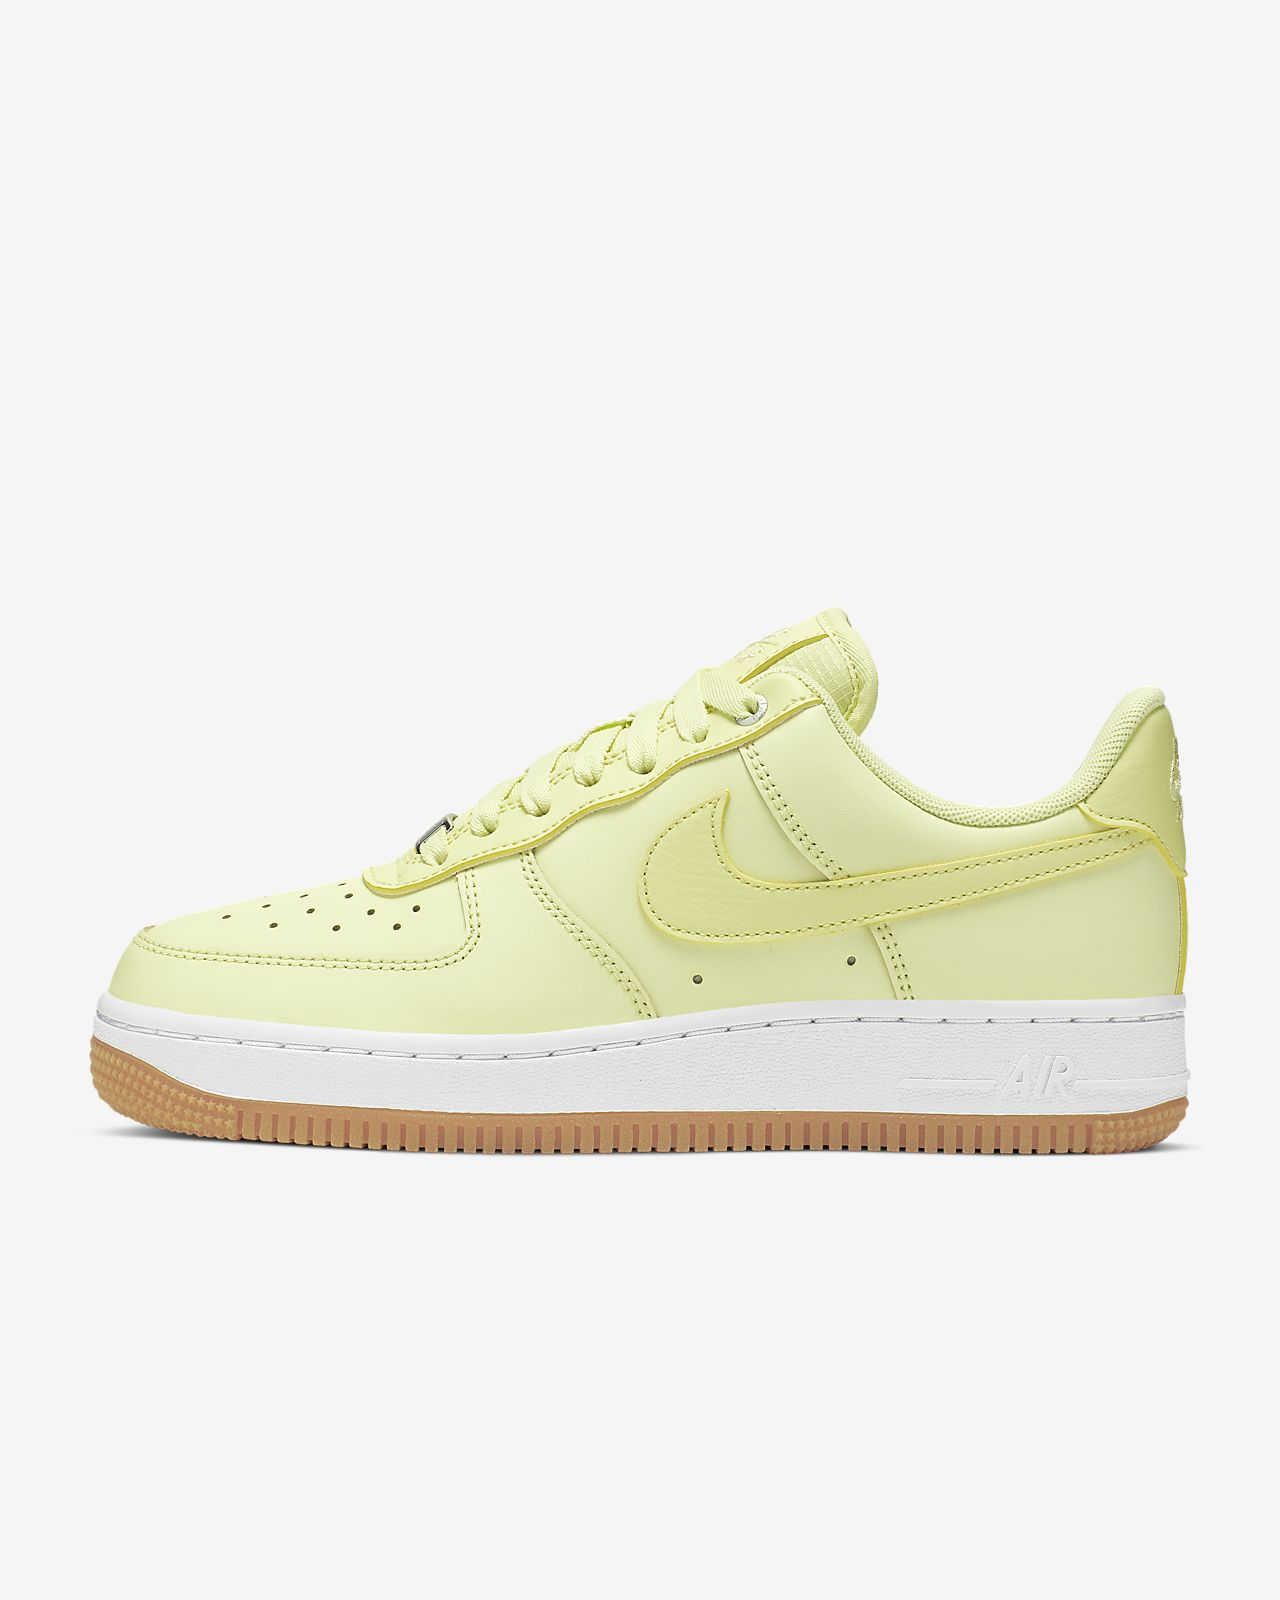 Nike Air Force 1 '07 Low Premium Damenschuh